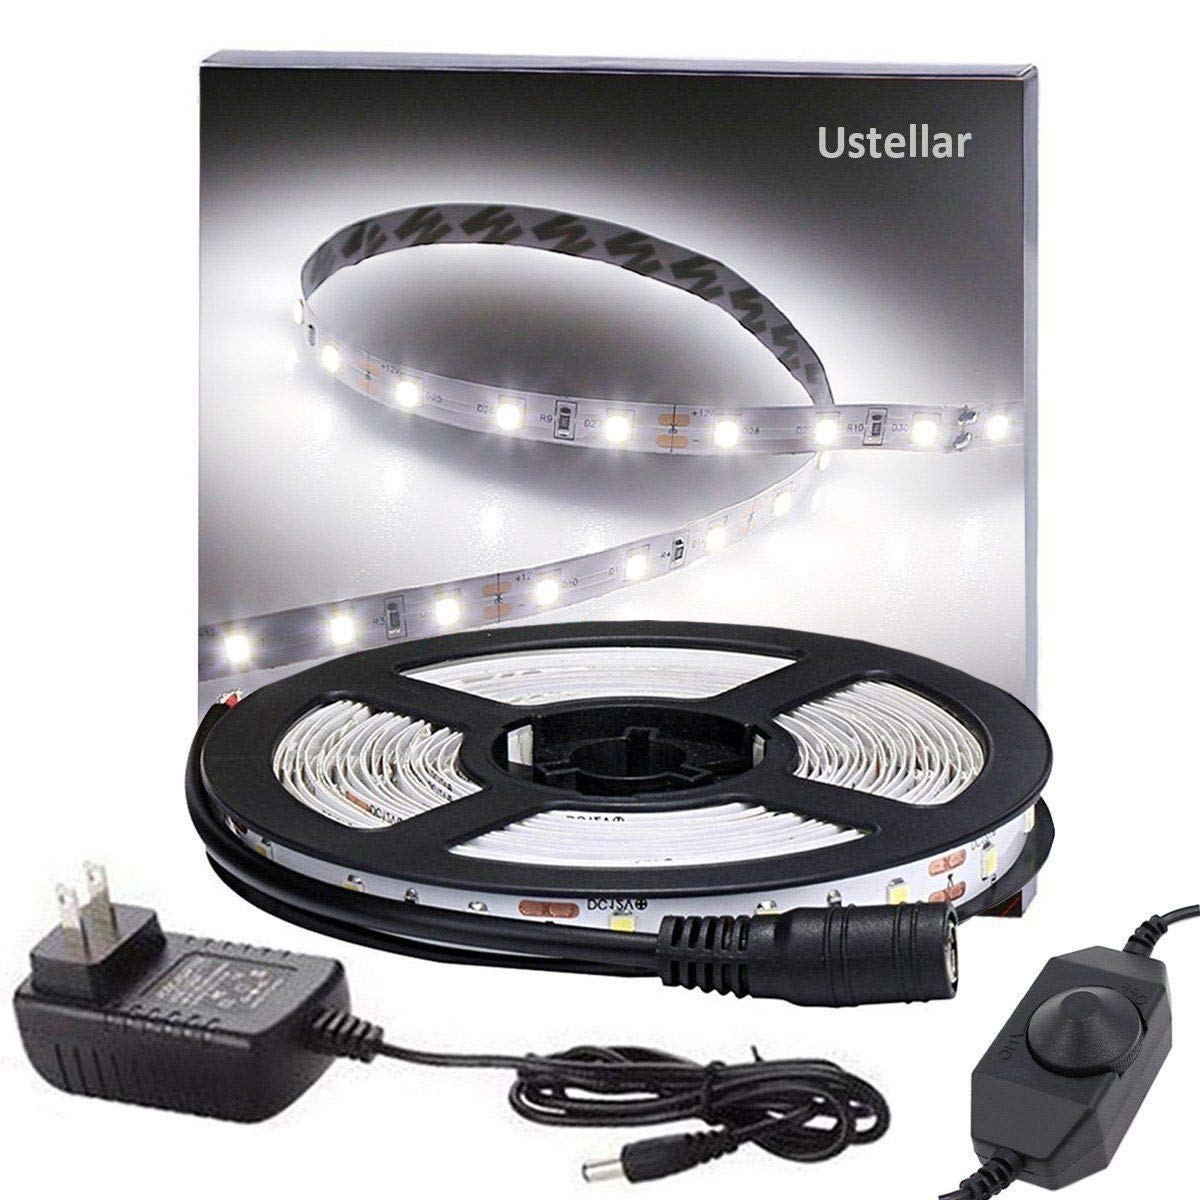 Ustellar Dimmable LED Light Strip Kit, 300 Units SMD 2835 LEDs, 16.4ft/5m 12V LED Ribbon, 6000K Daylight White Under Cabinet Lighting Strips, Non-waterproof LED Tape, UL Listed Power Supply